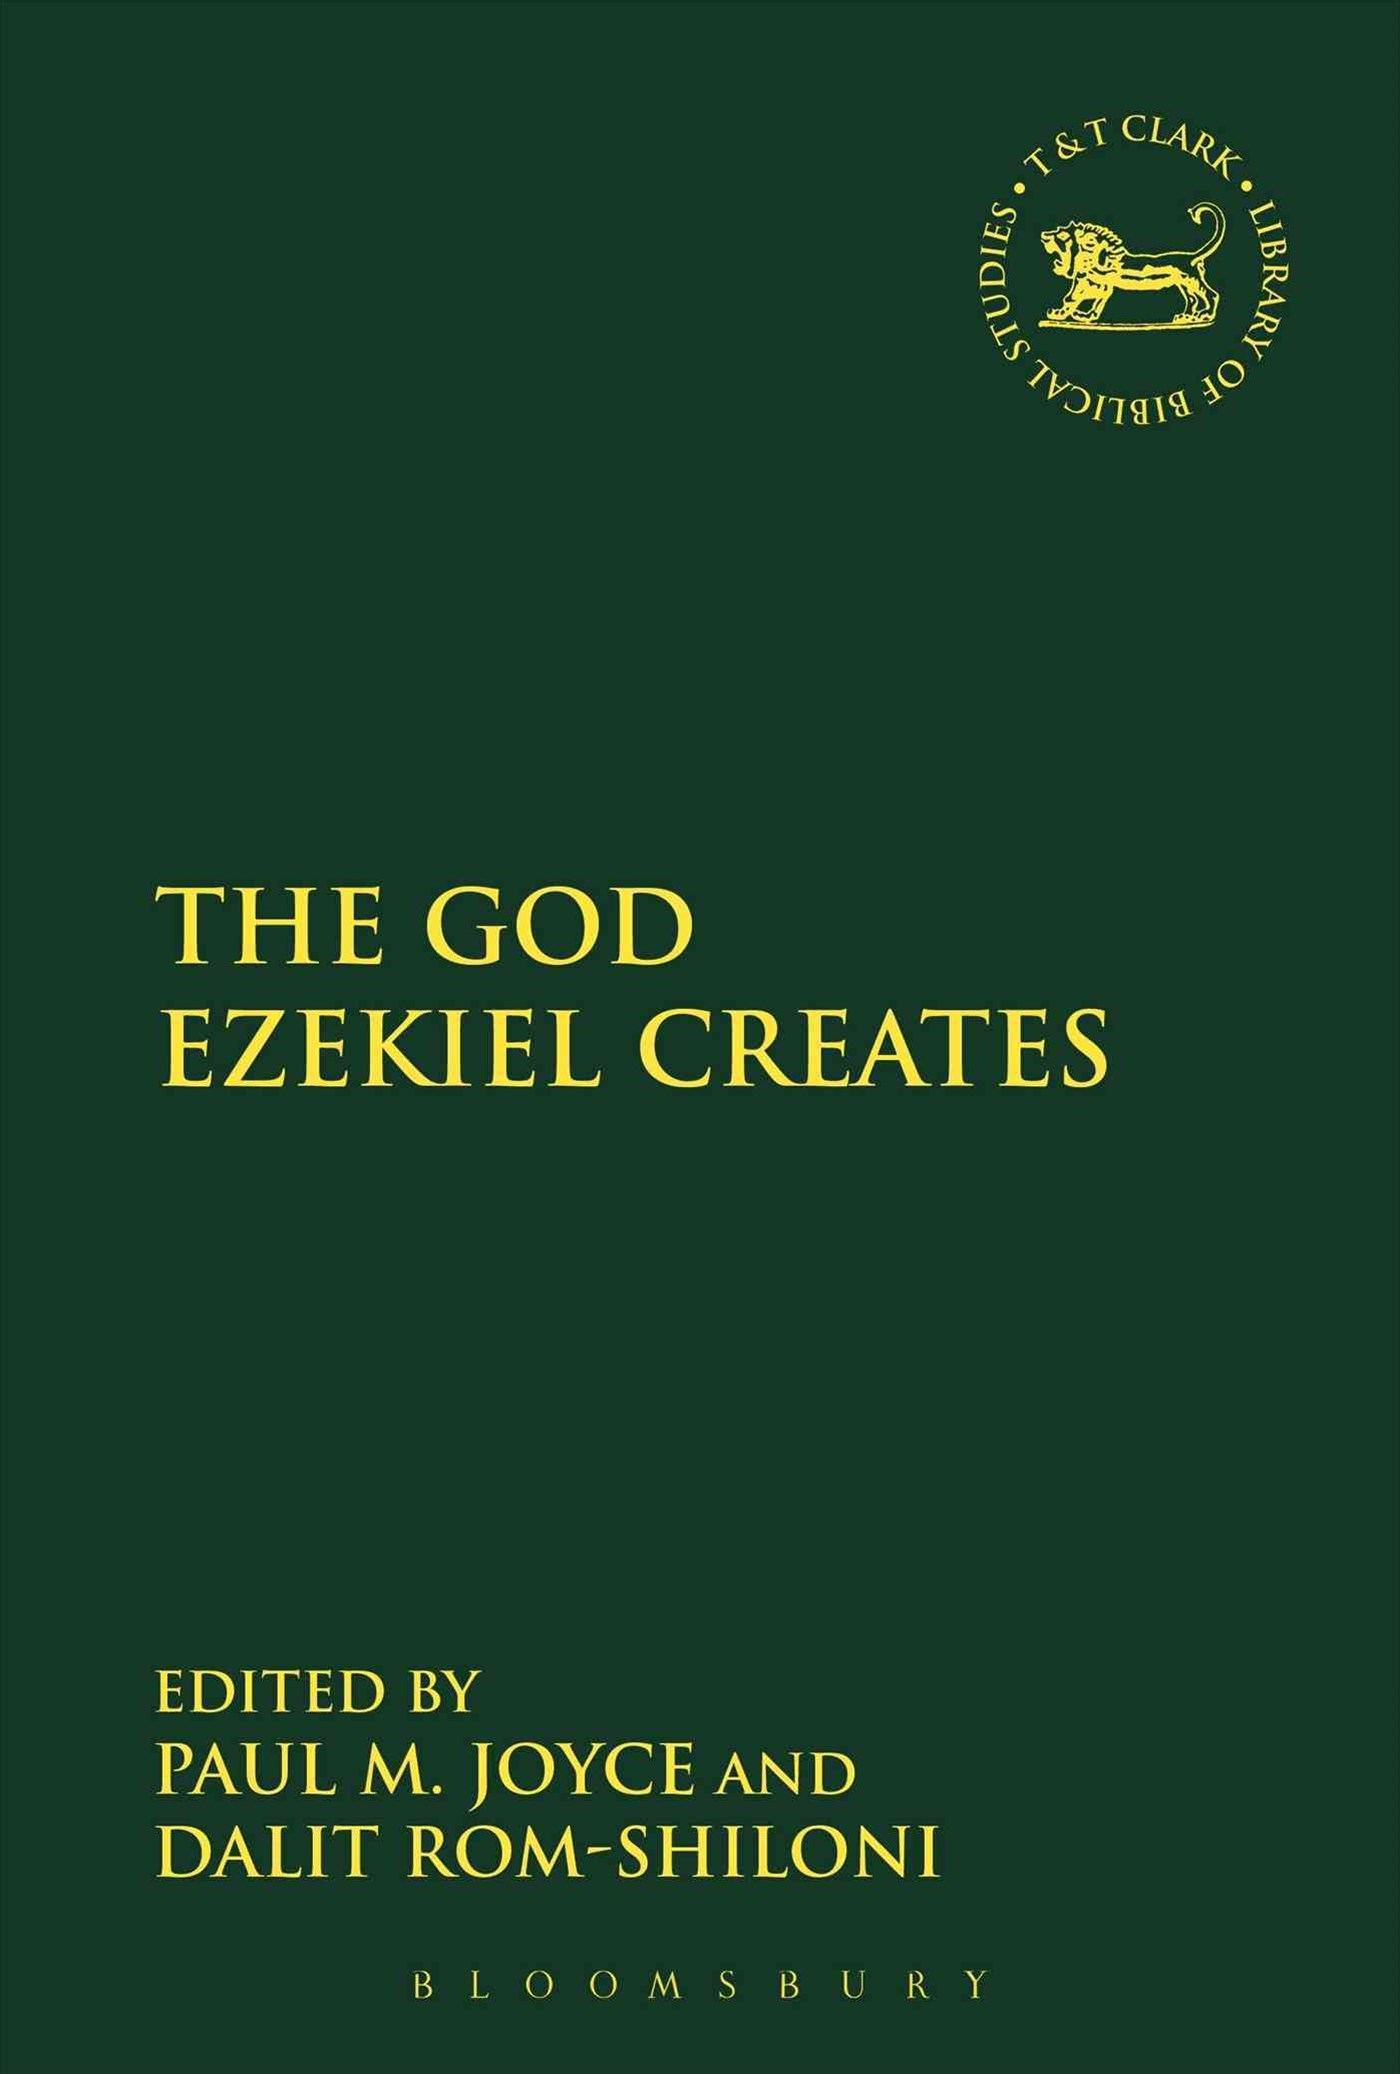 God Ezekiel Creates